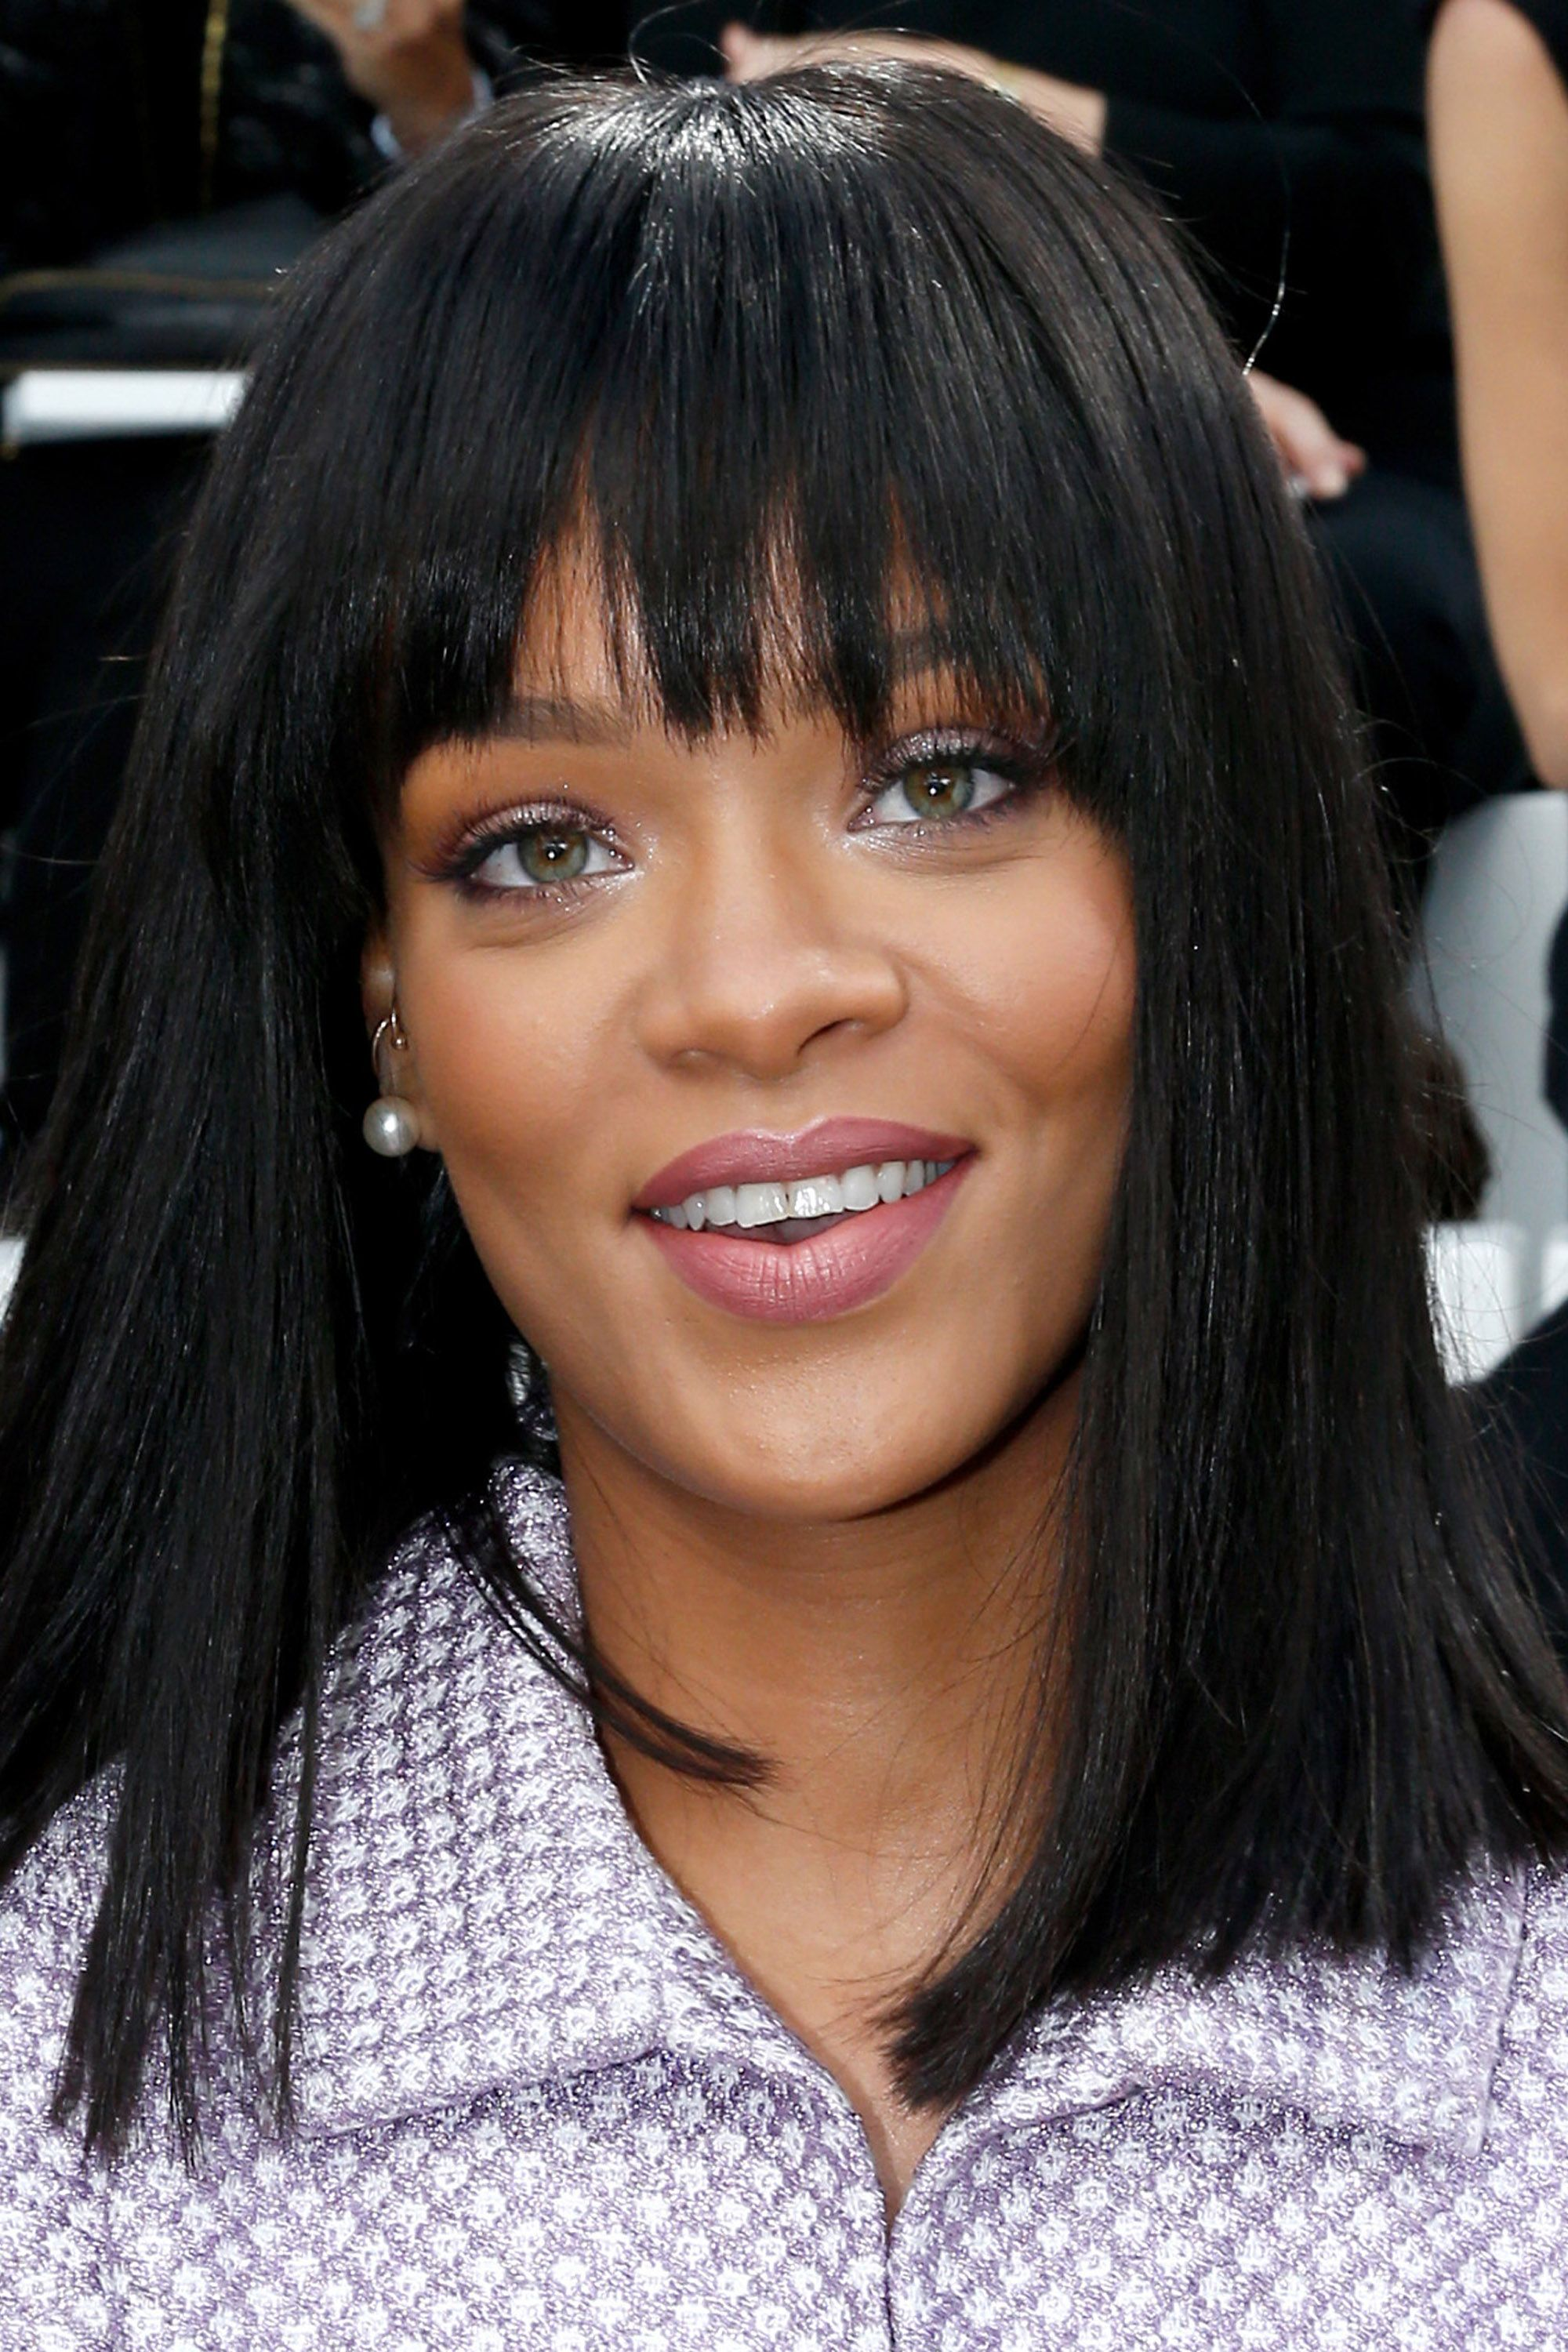 PARIS, FRANCE - MARCH 04:  Singer Rihanna attends the Chanel show as part of the Paris Fashion Week Womenswear Fall/Winter 2014-2015 on March 4, 2014 in Paris, France.  (Photo by Bertrand Rindoff Petroff/Getty Images)